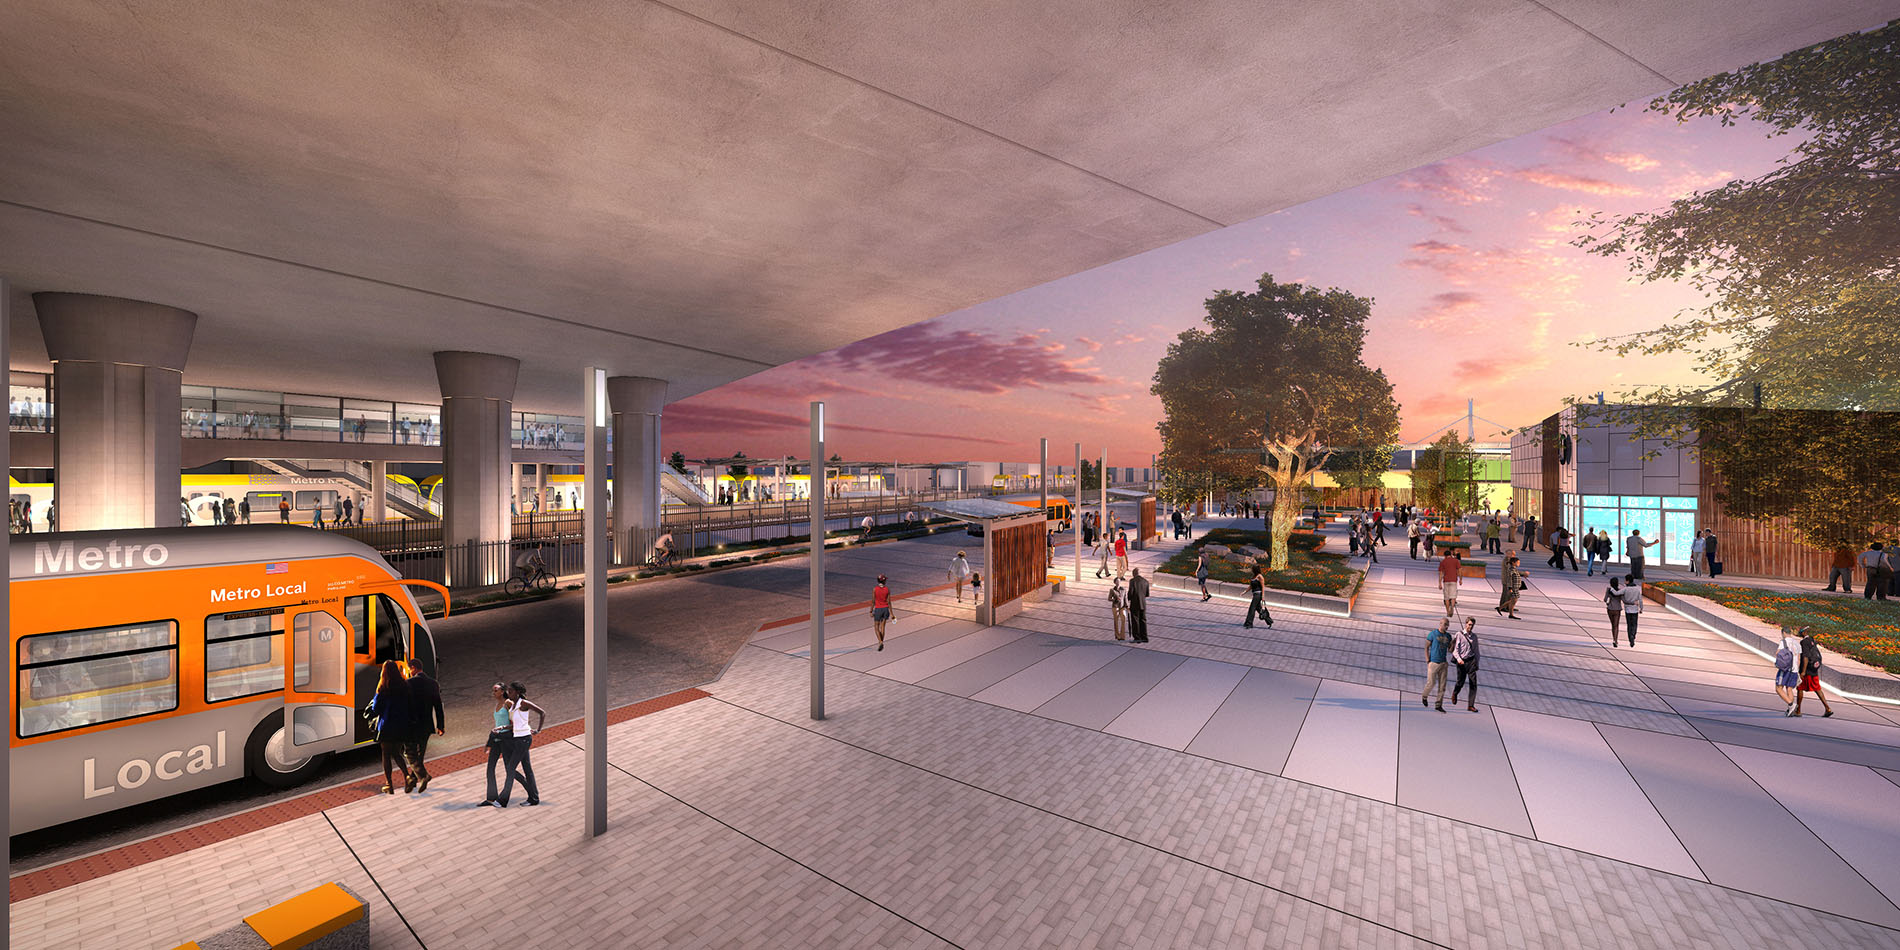 Safe and Seamless Transfers: Bus bays will be consolidated next to the plaza to improve pedestrian connections. A spacious mezzanine will make transferring between Metro Rail lines easier.